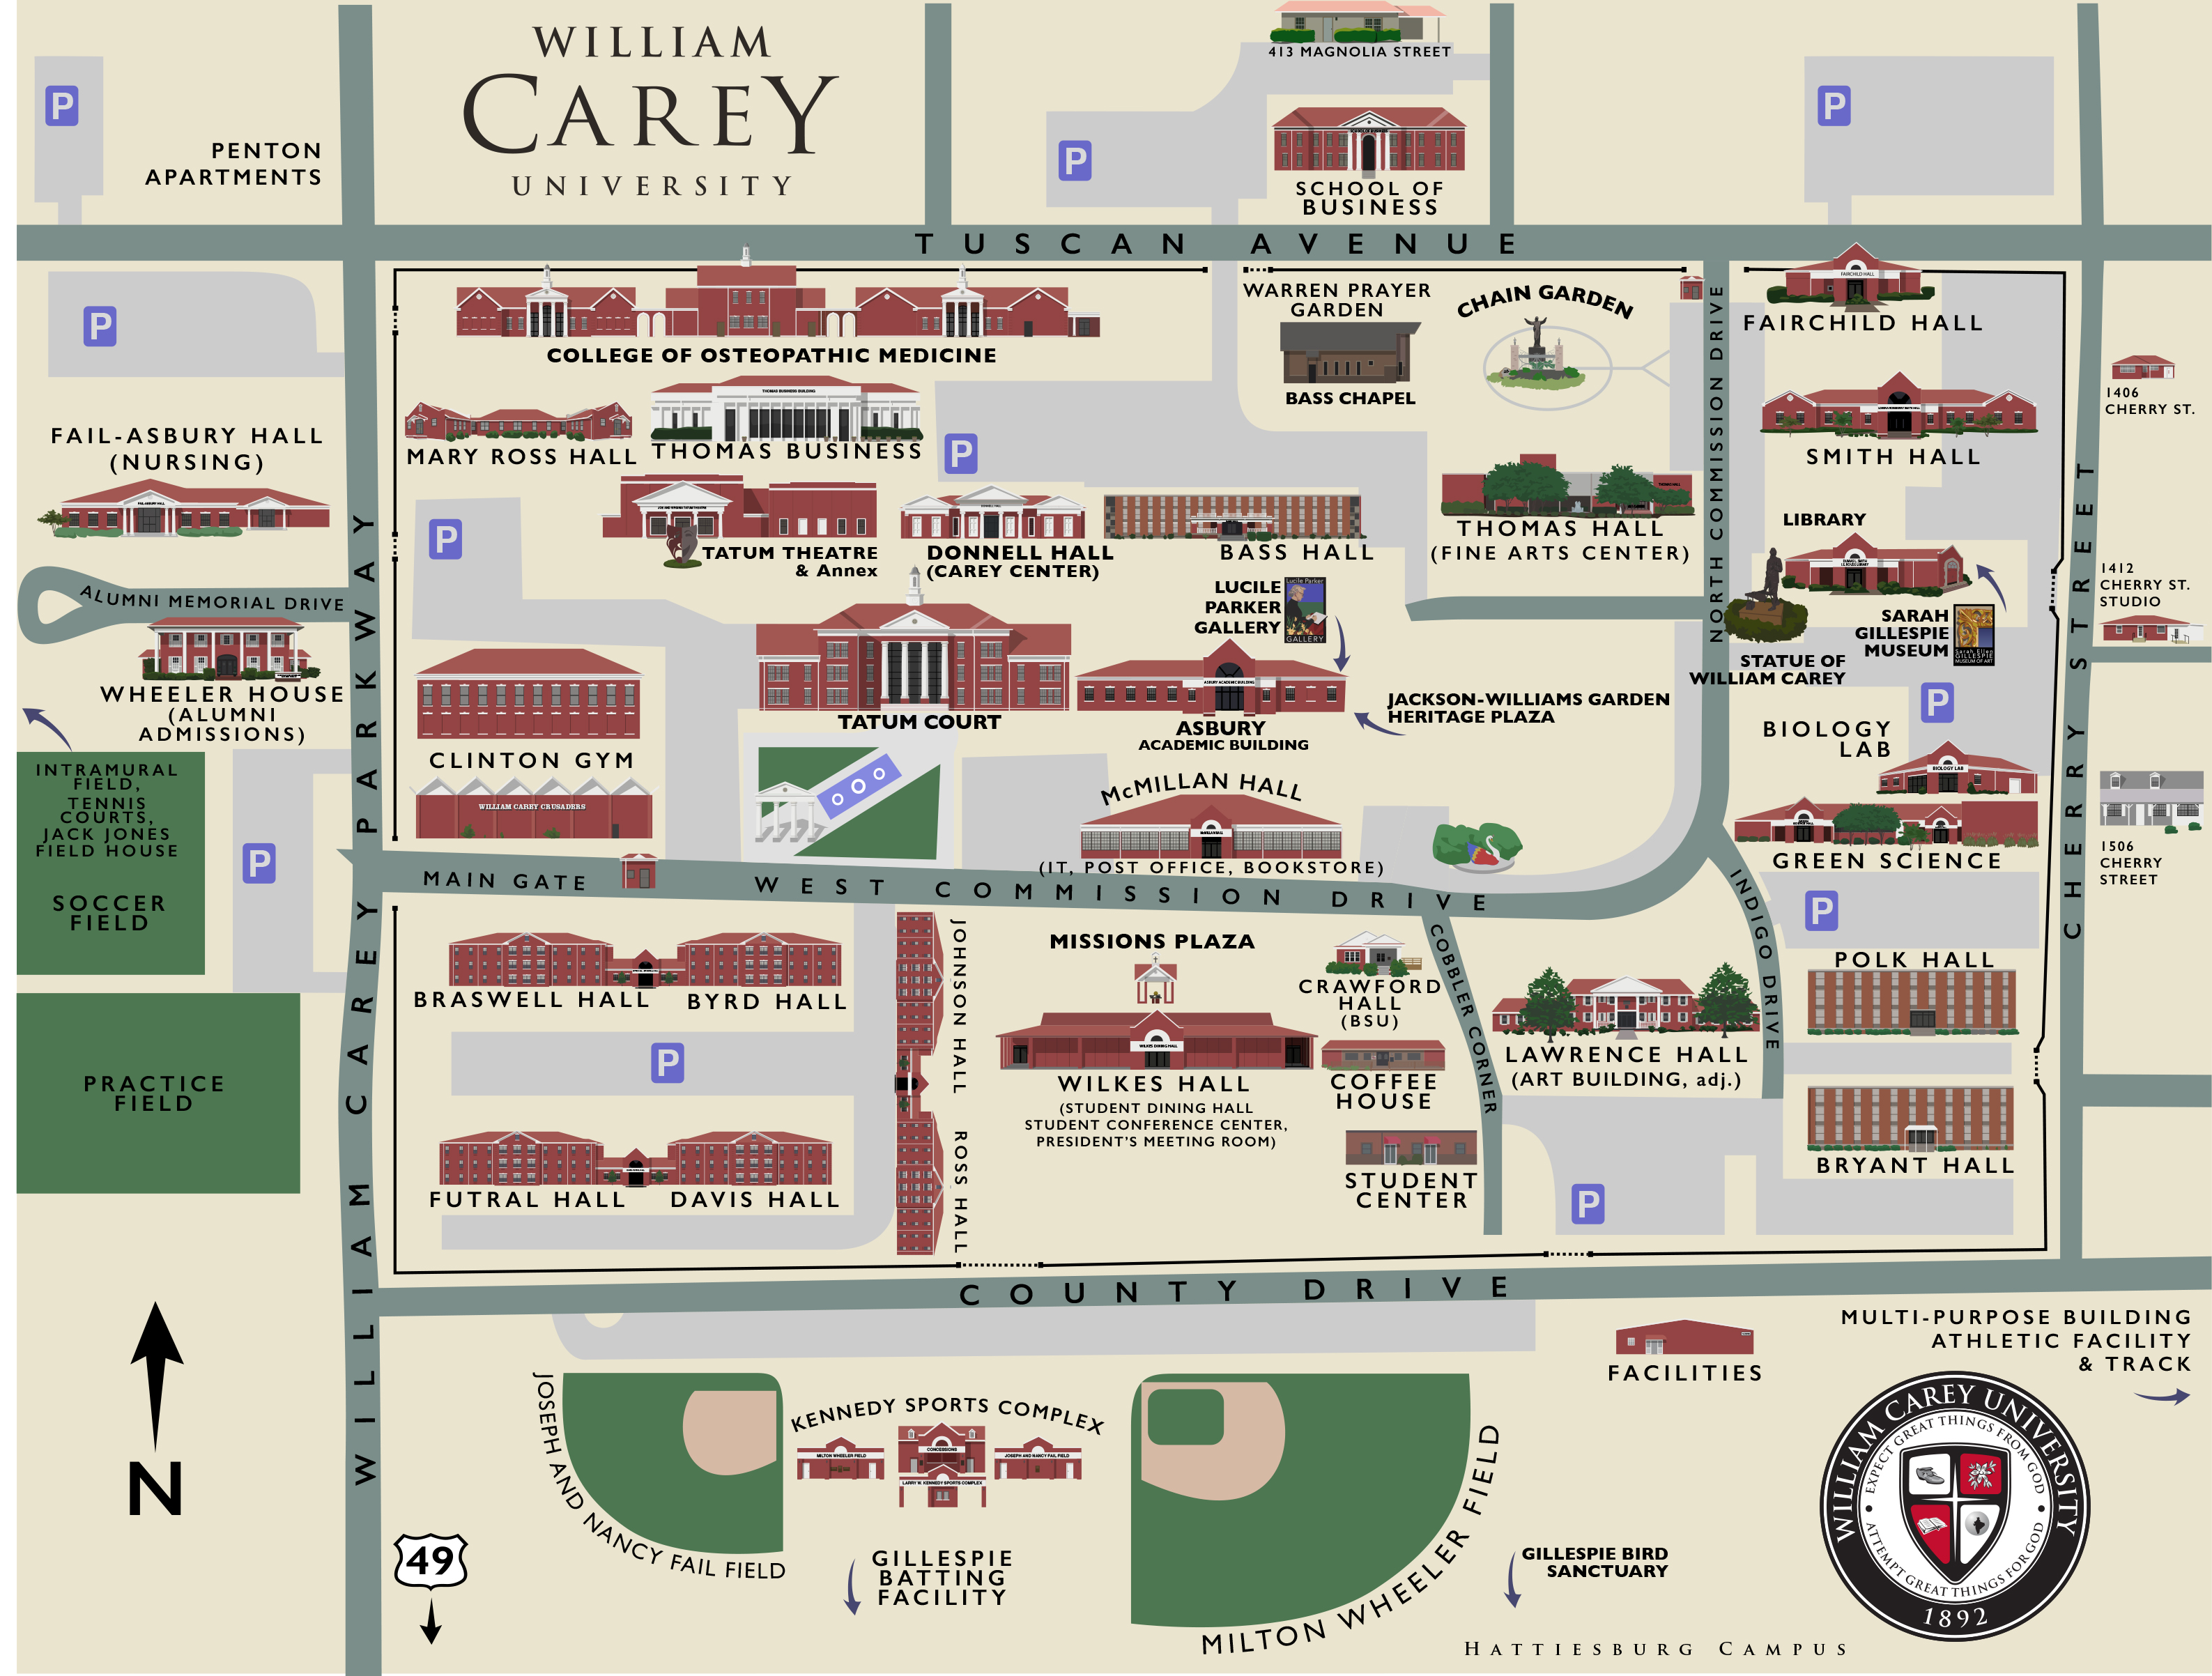 southern miss campus map Commencement William Carey University southern miss campus map